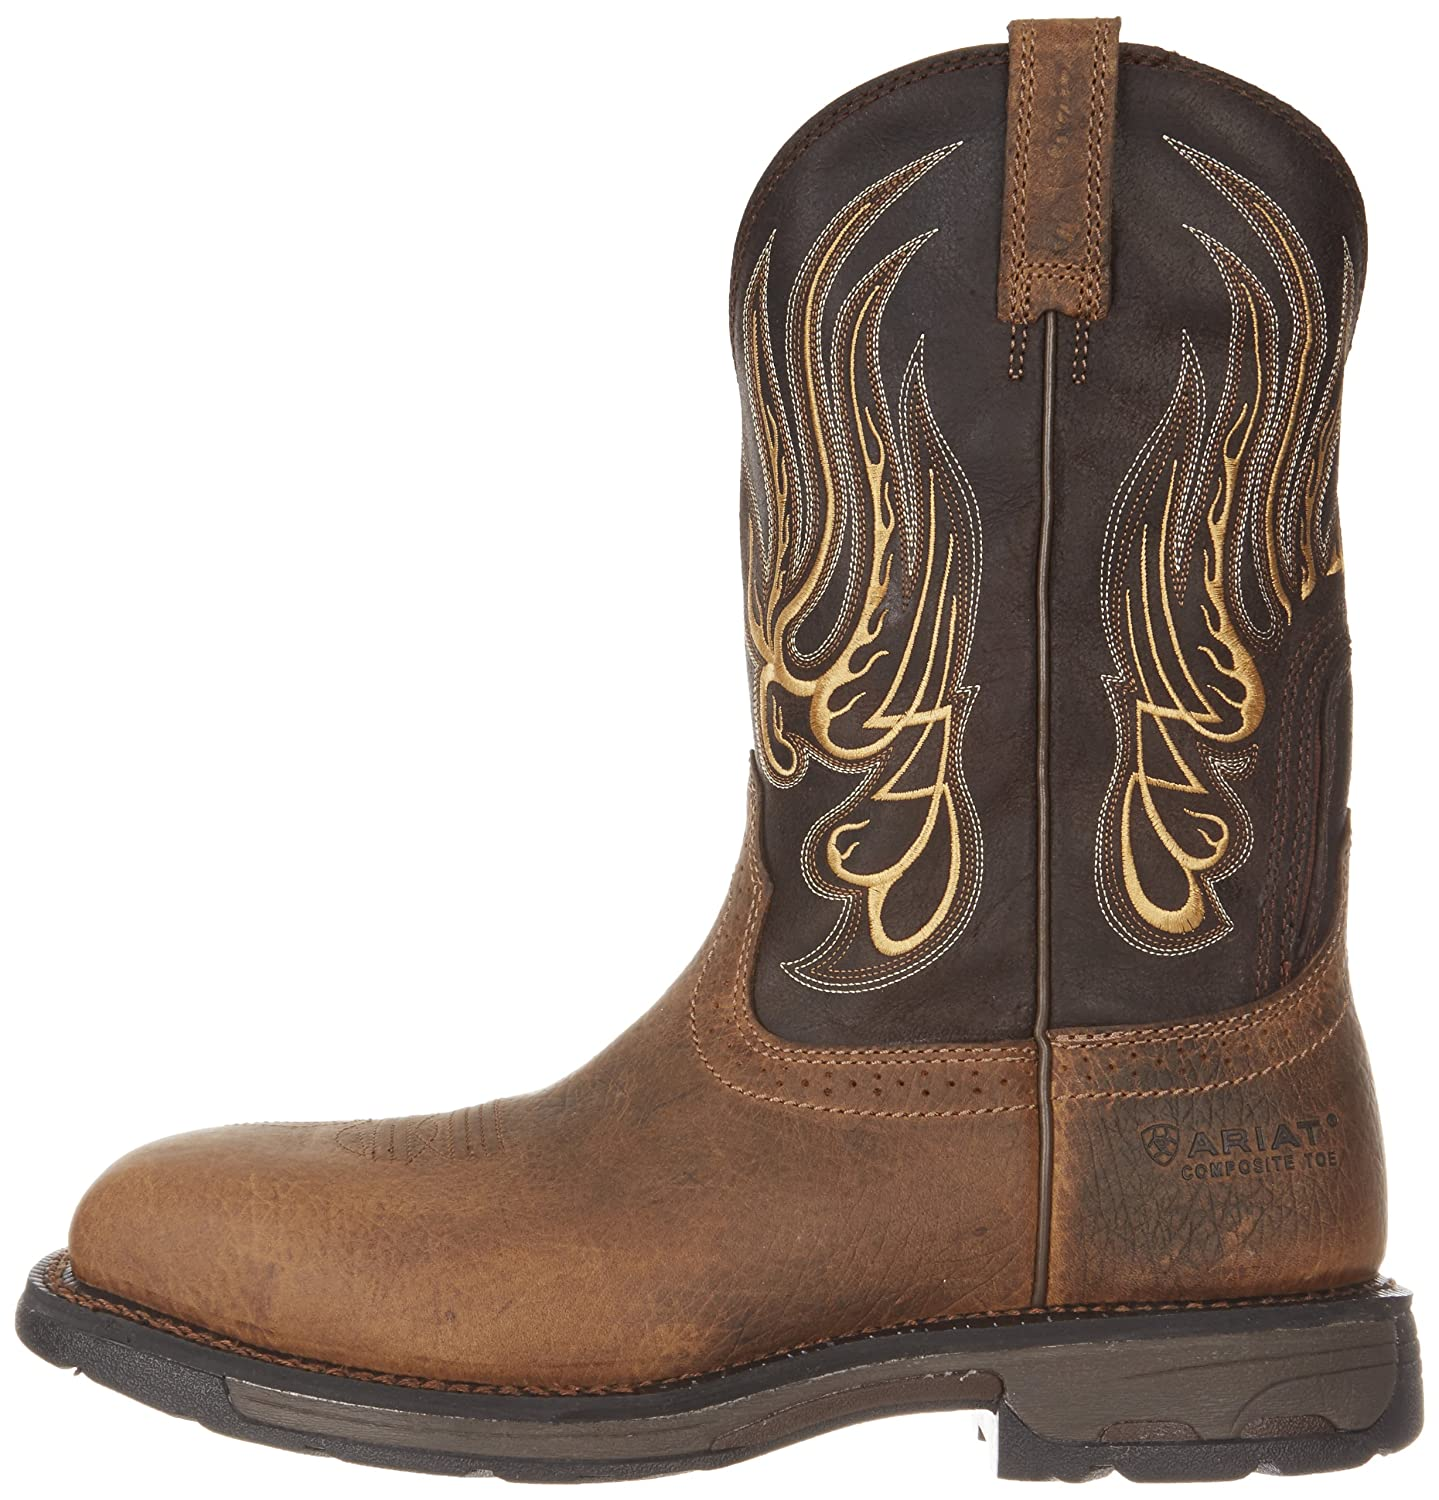 Ariat Workhog Mesteño II Cowboy Boot(Men's) -Rustic Brown/Stone Full Grain Leather New Arrival Cheap Price Sale Eastbay Discount Original Sneakernews Cheap Online Discount Cheapest DxaGGm9